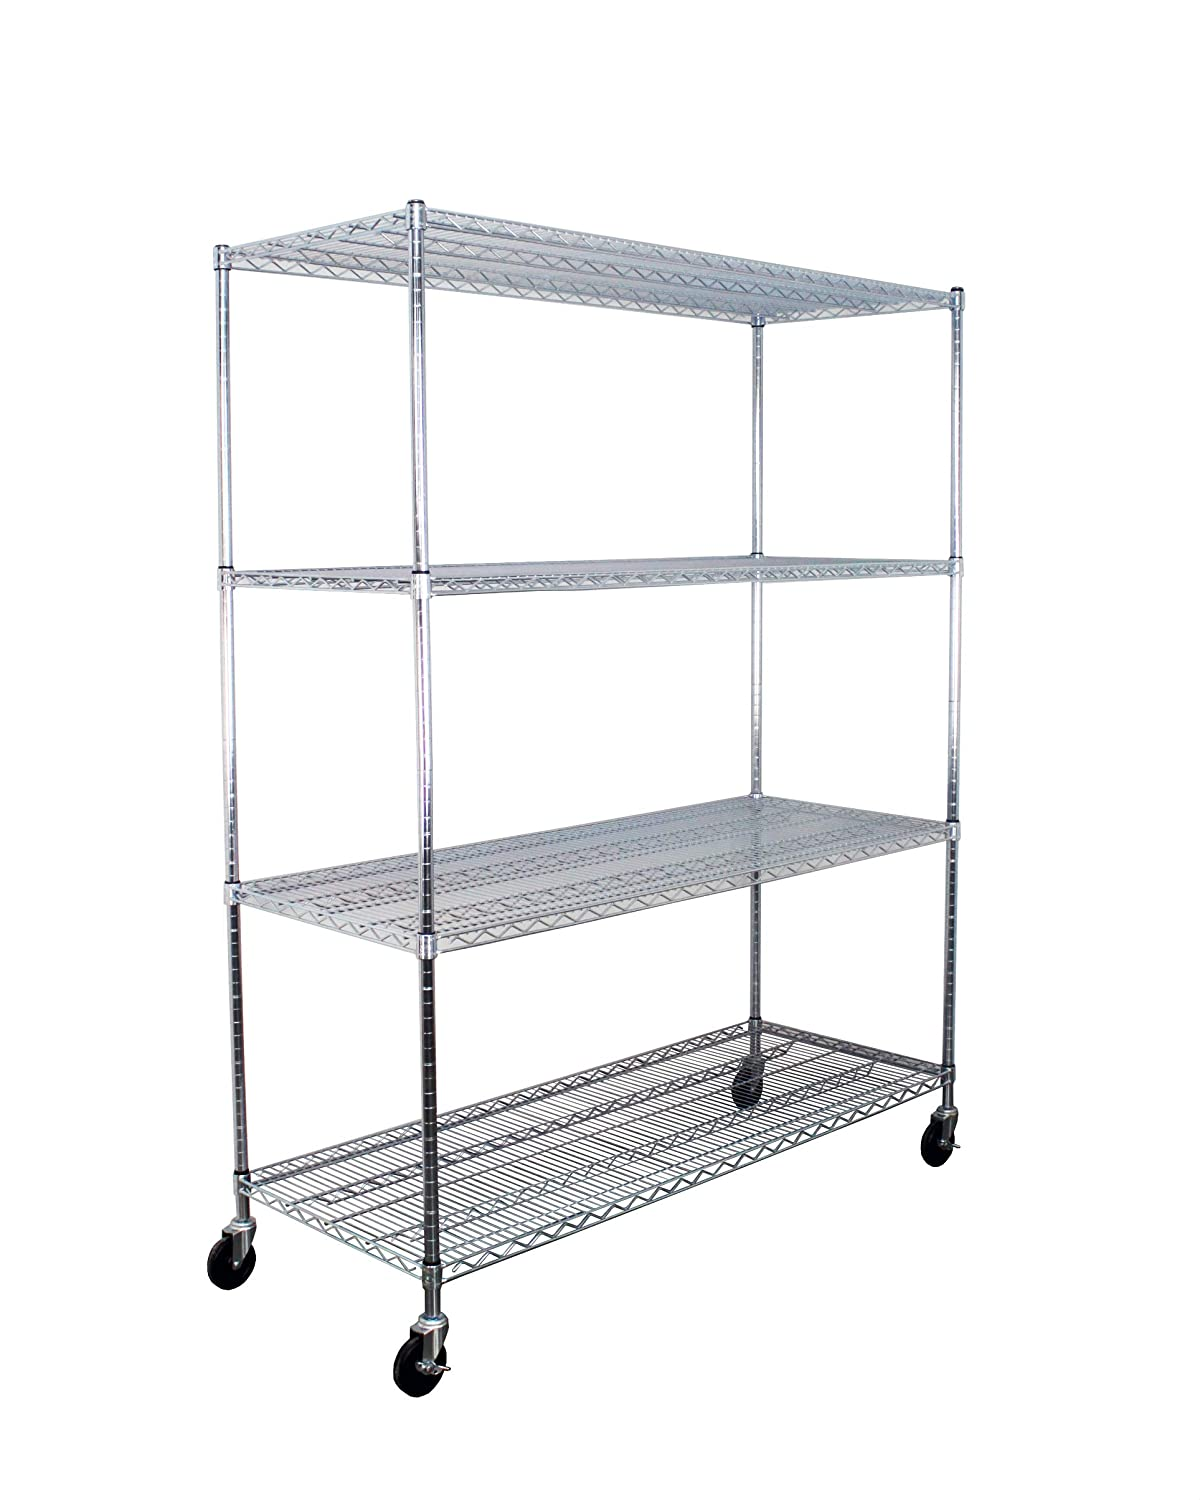 """SafeRacks NSF Certified Commercial Grade Adjustable 4-Tier Steel Wire Shelving Rack with 4"""" Wheels - 24"""" x 60"""" x 72"""" (24""""x60""""x72"""" 4-Tier)"""